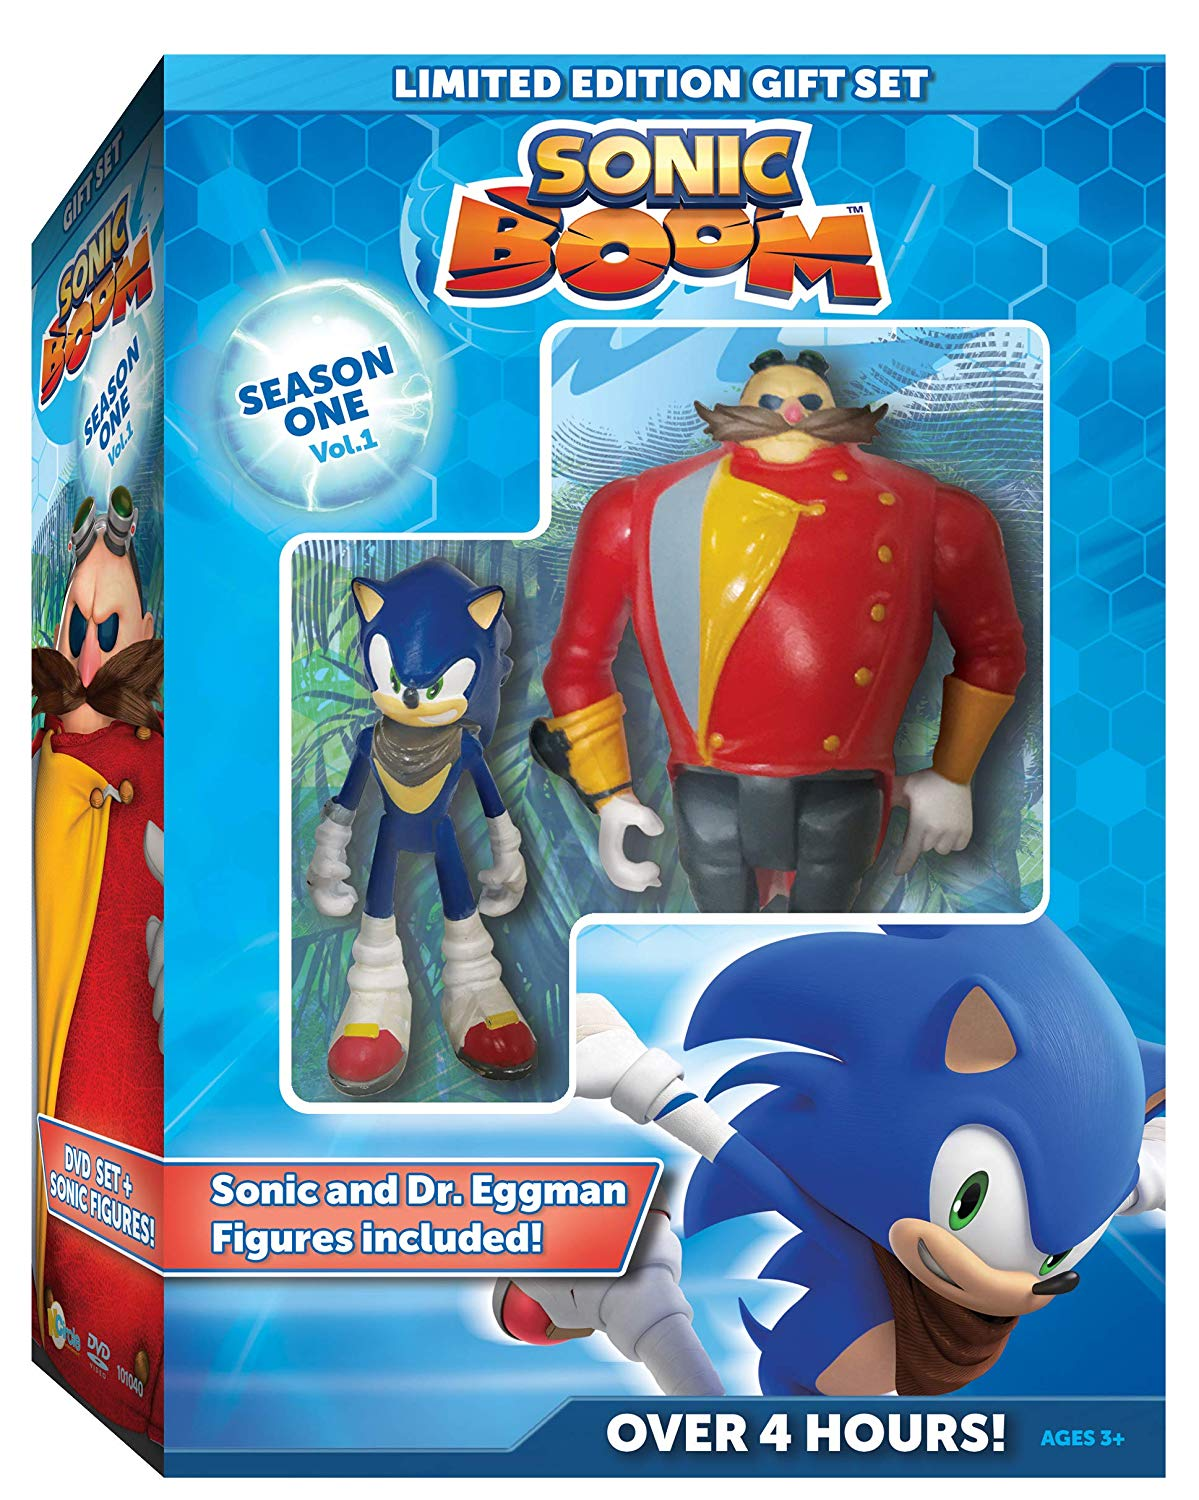 Sonic Boom Season 1, Volume 1 DVD announced for America – includes action figures!